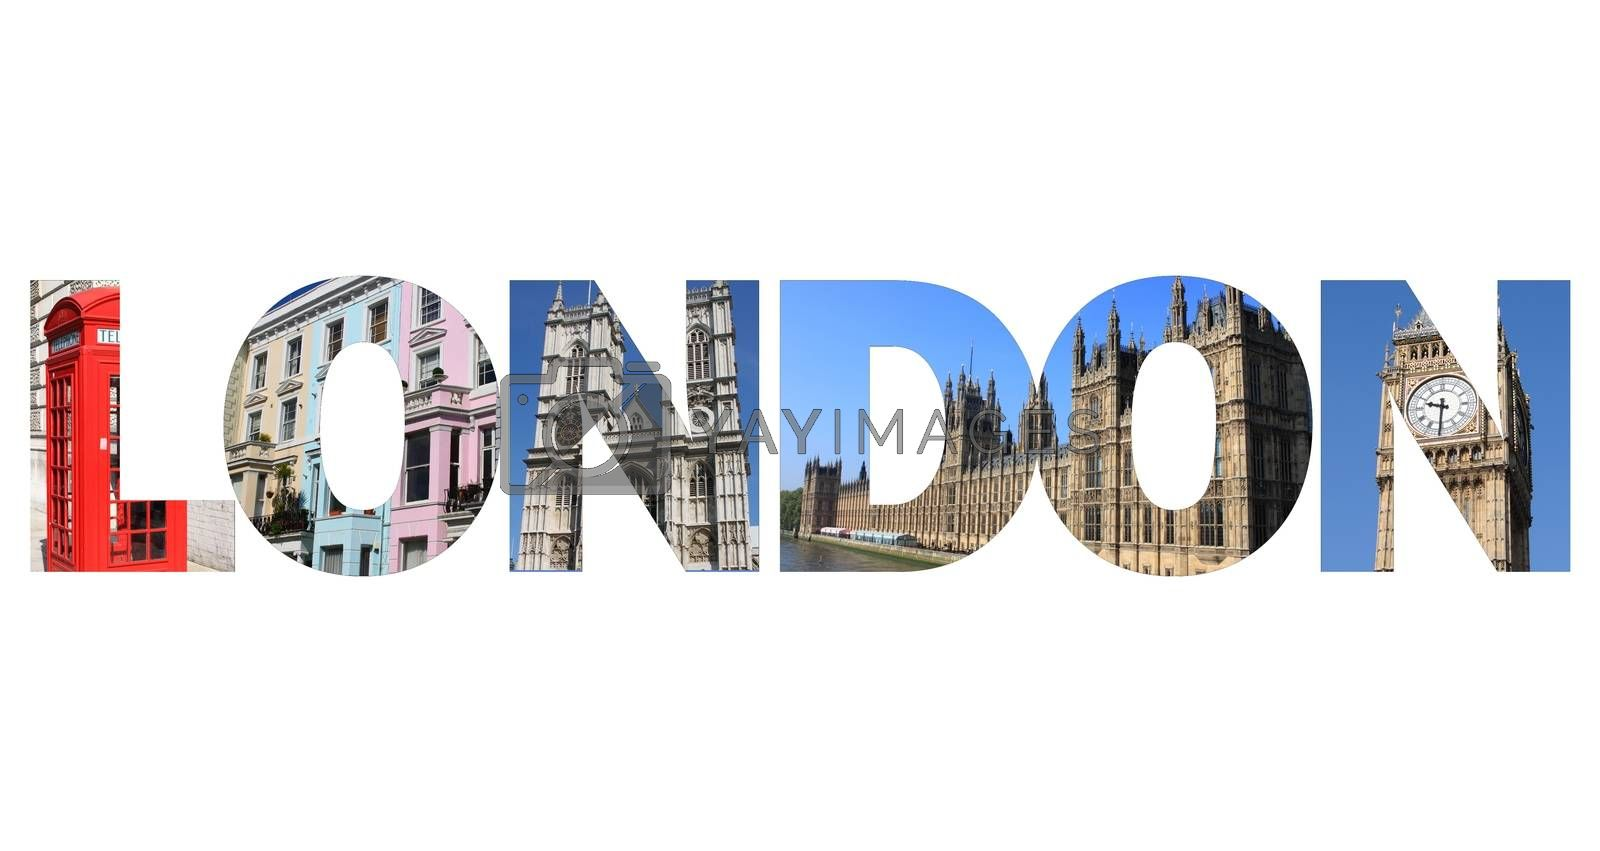 London text by alessandro0770